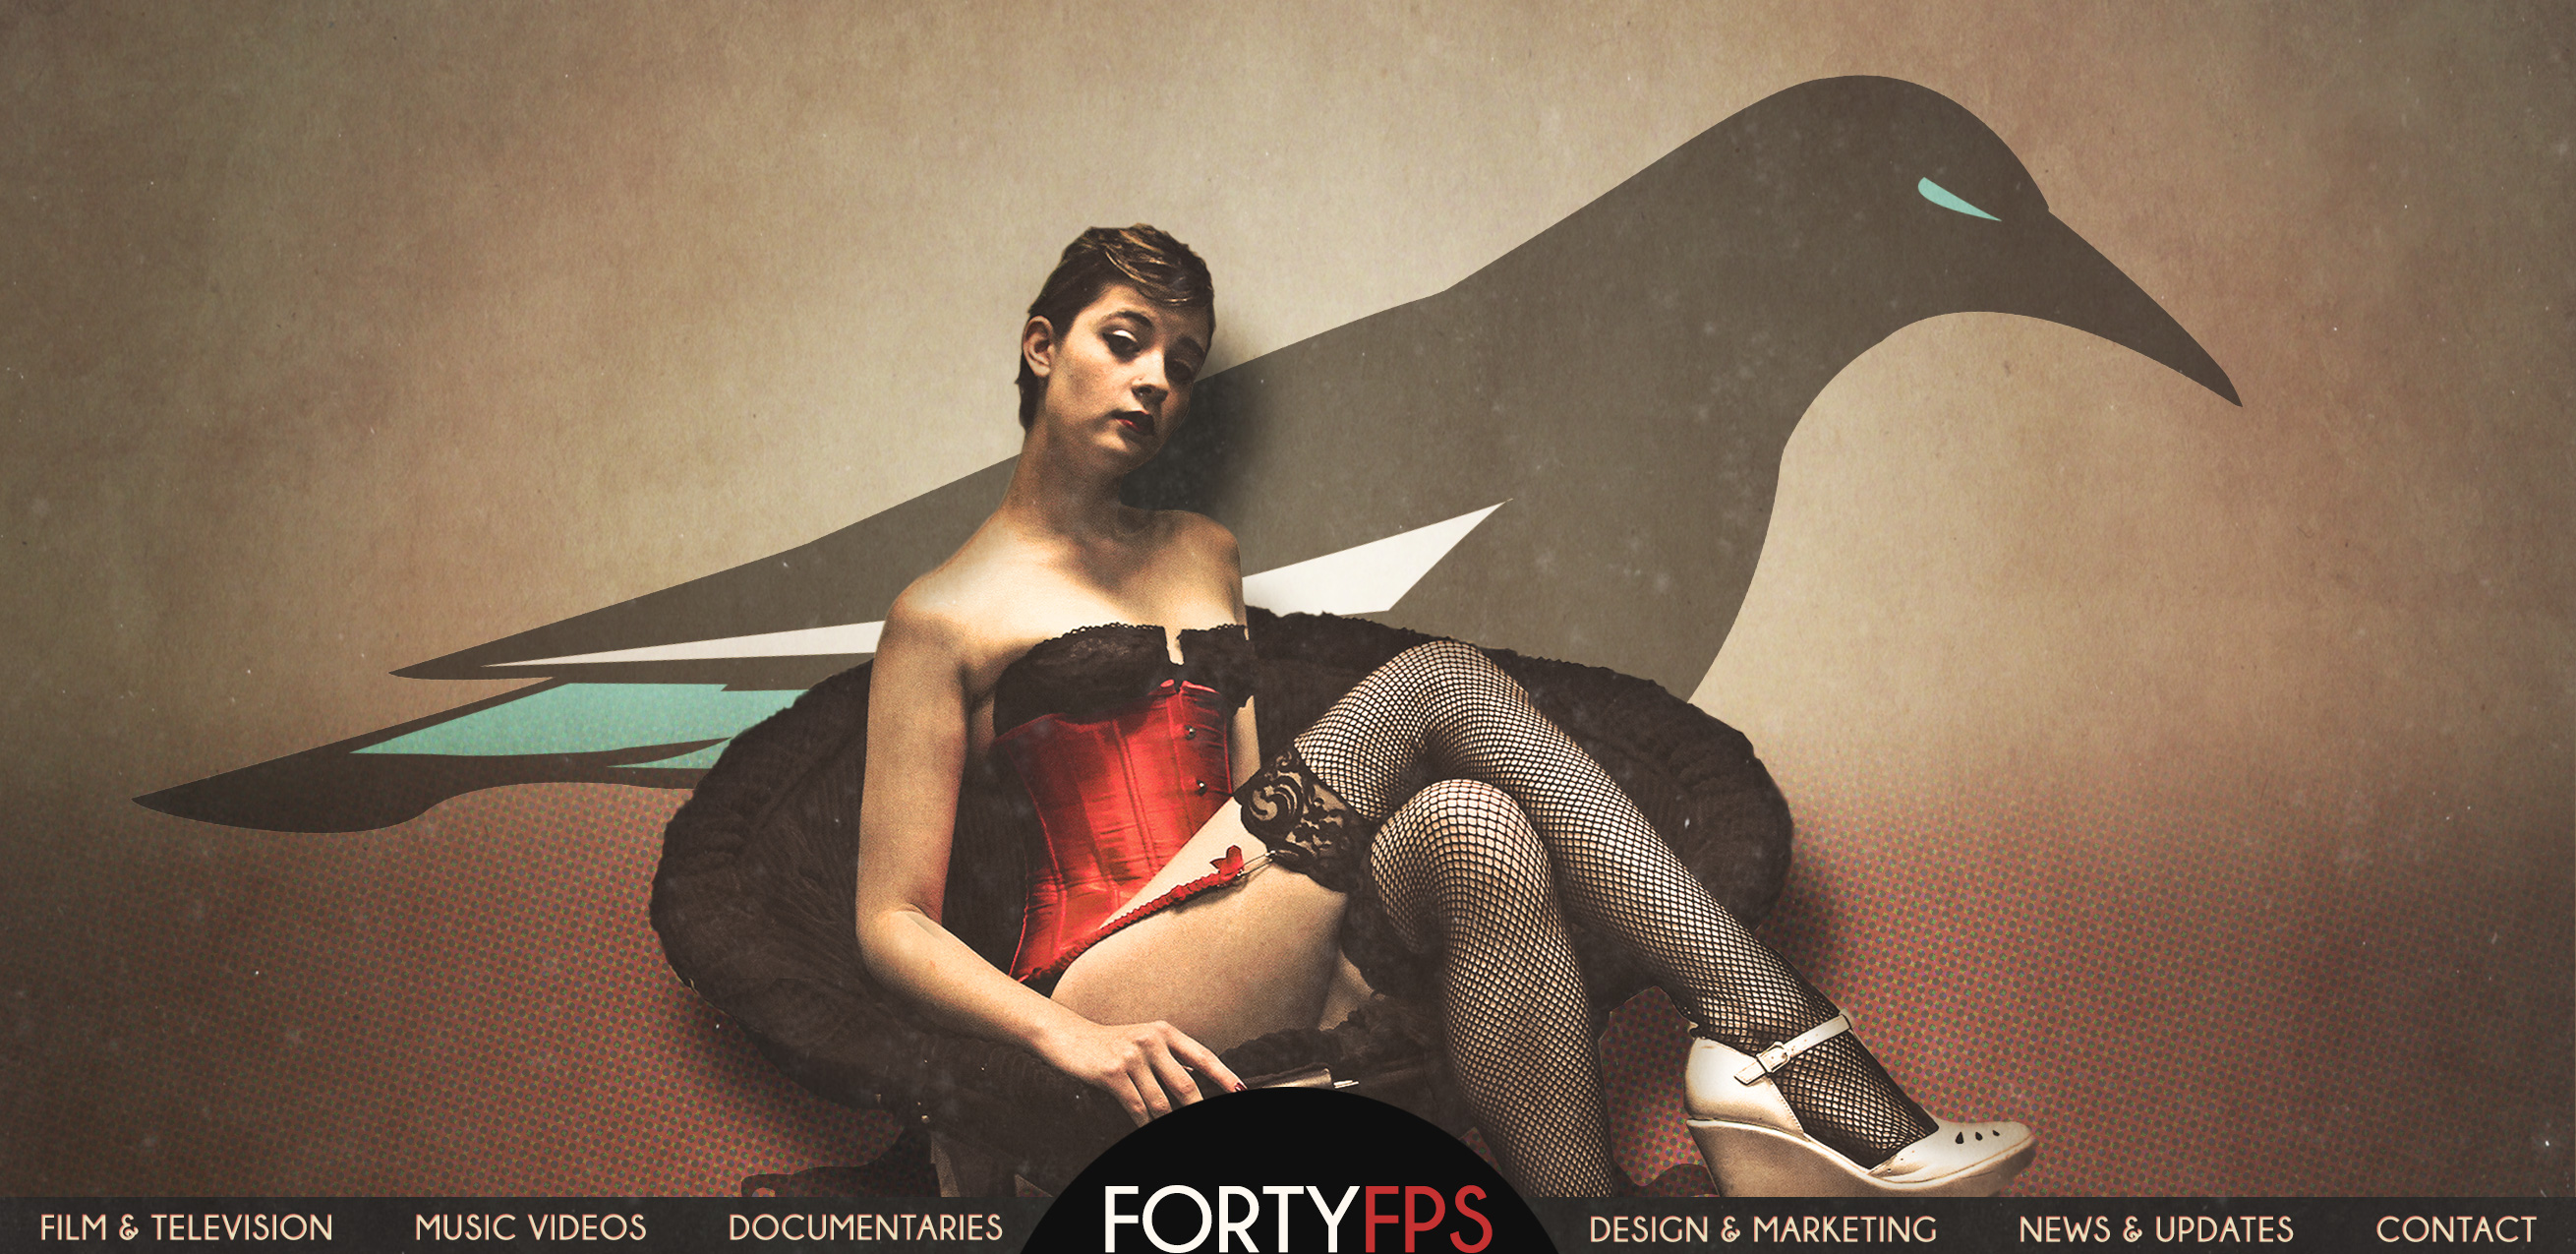 FortyFPS Productions Digital Portfolio For Filmmaker Composer CJ Wallis